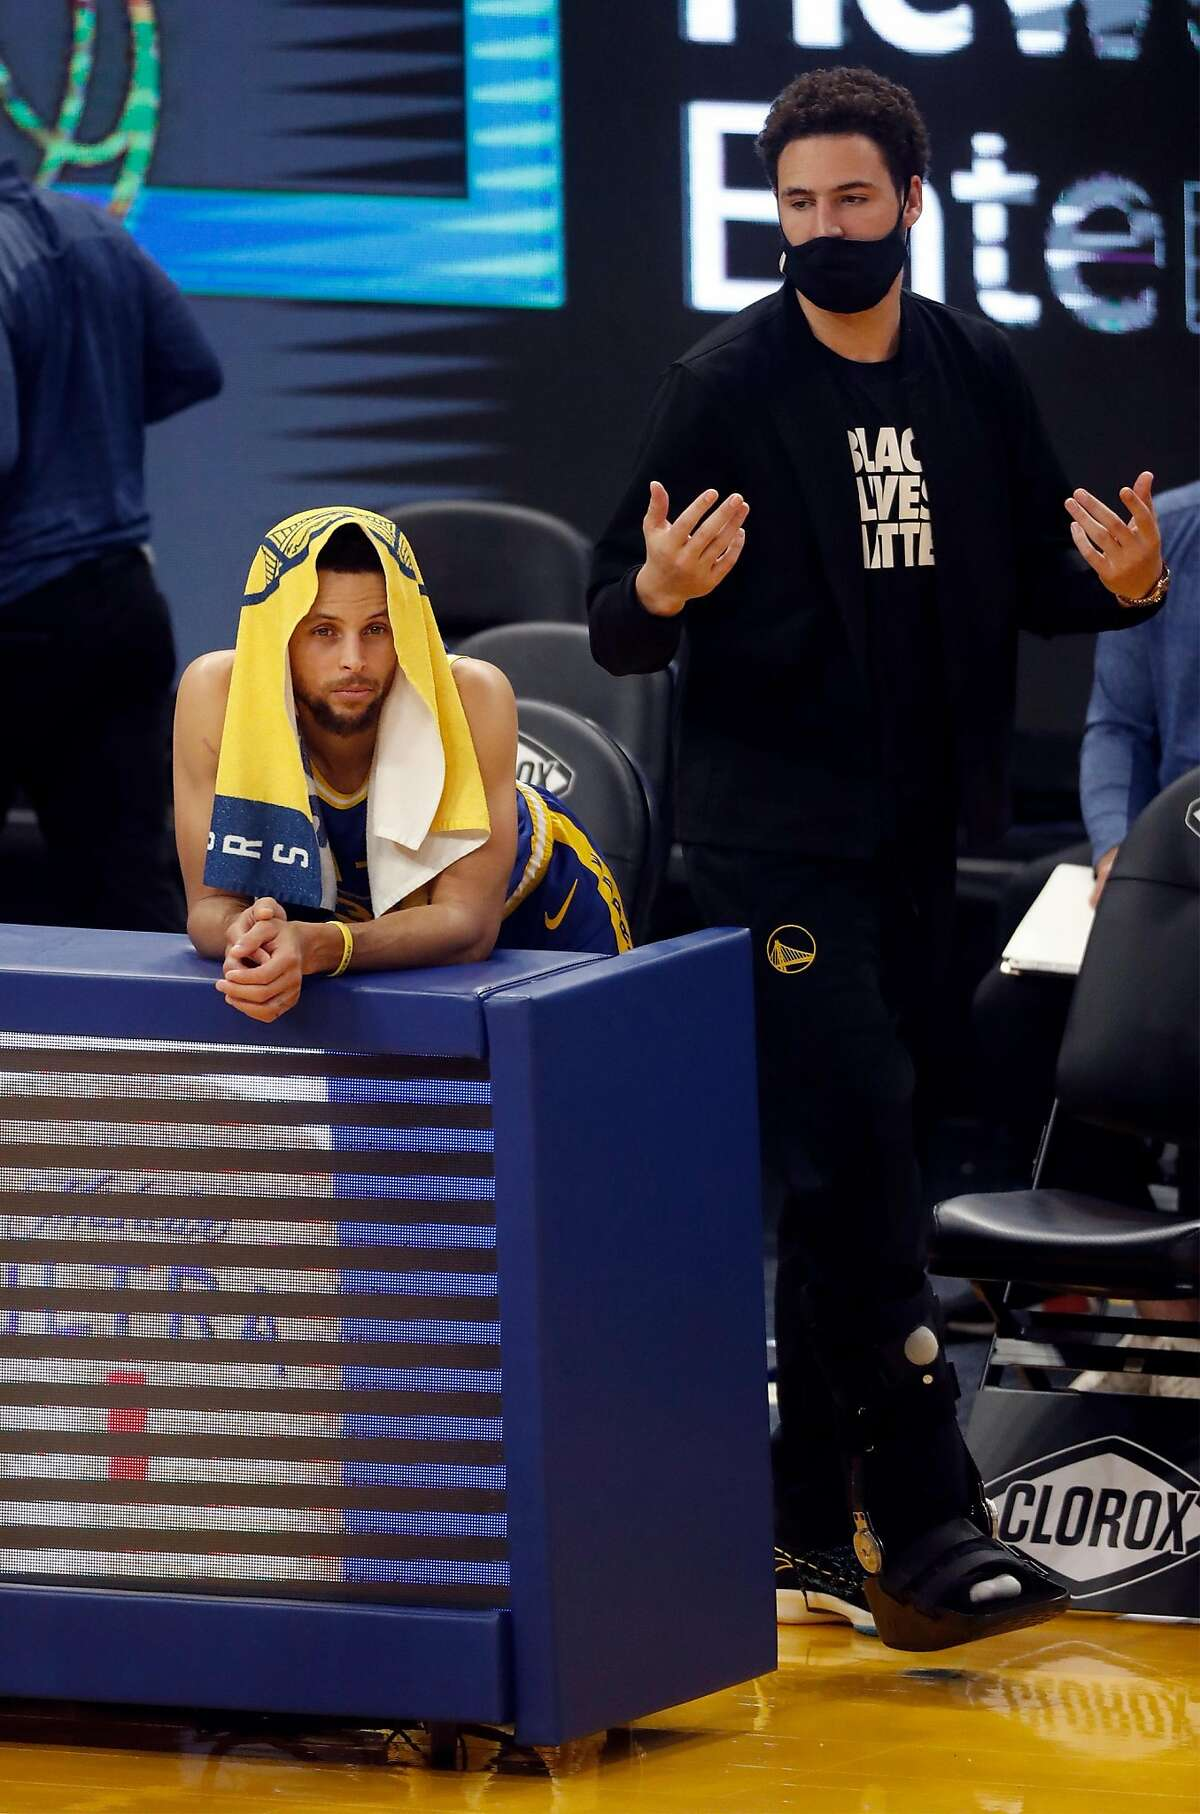 Warriors teammates Stephen Curry and Klay Thompson look on warily as the Knicks open a 16-point lead in the fourth quarter of a Jan. 21 game.